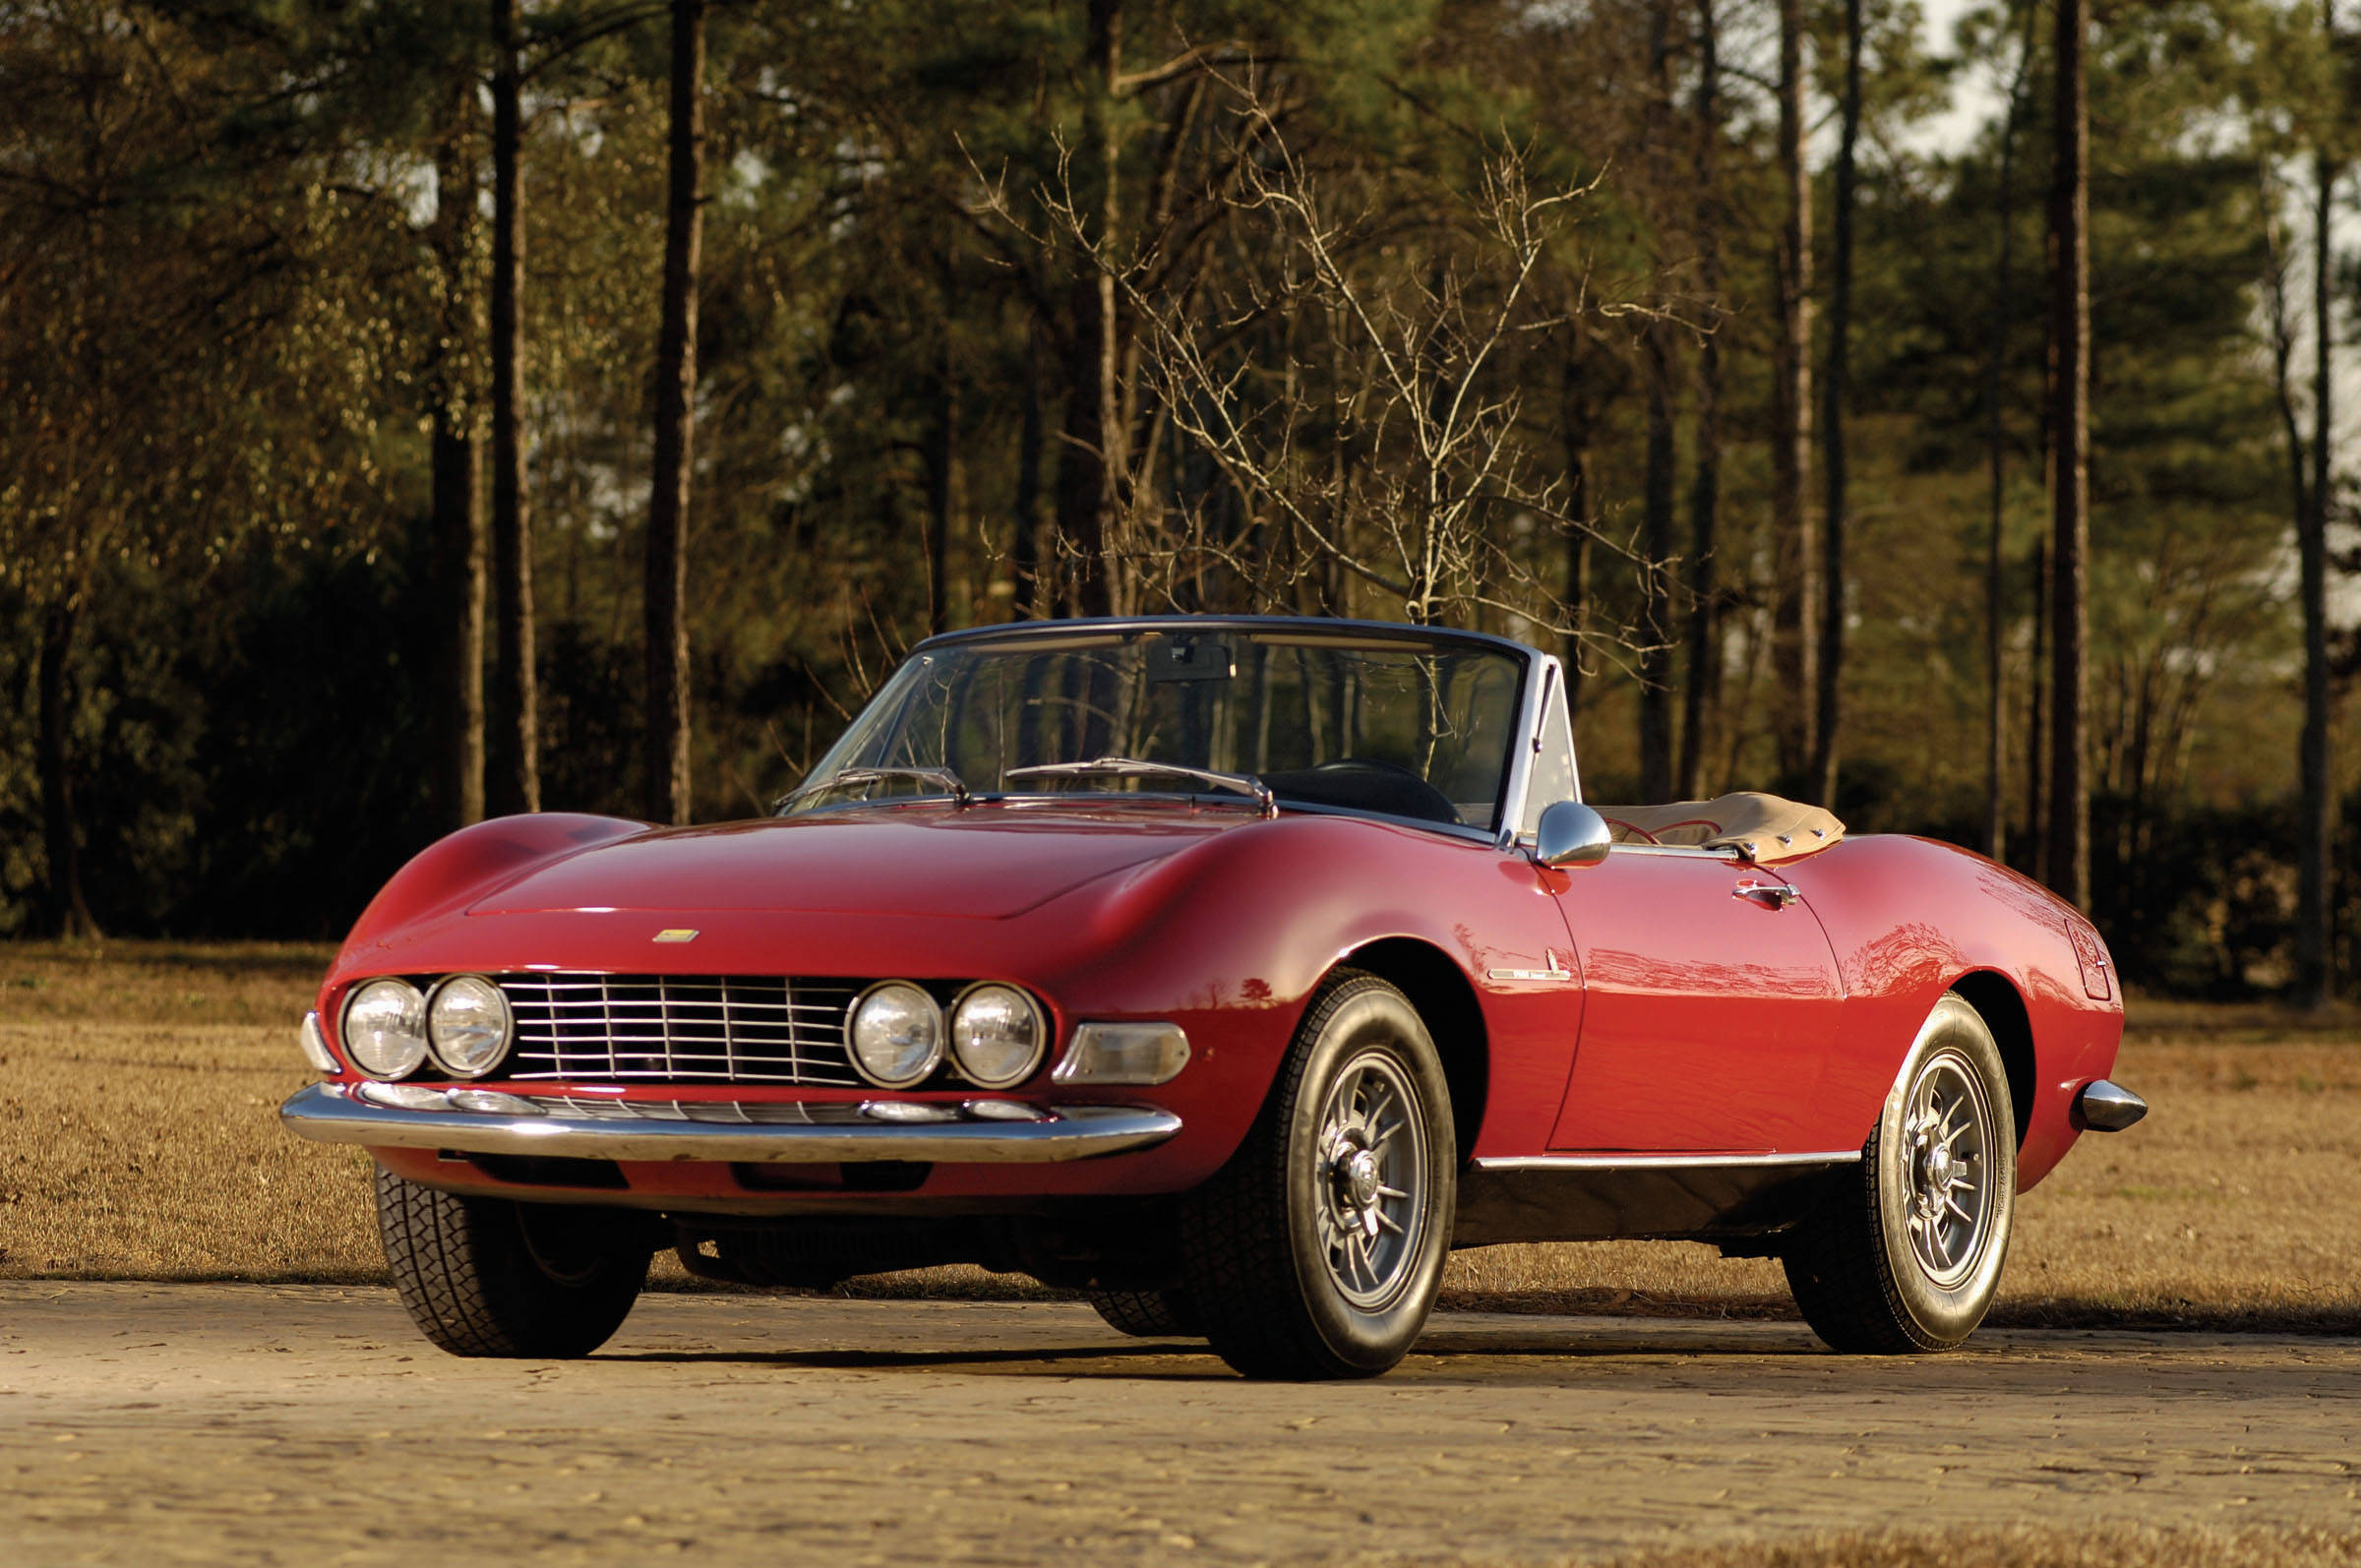 Click image for larger version  Name:fiat-dino-06.jpg Views:148 Size:509.8 KB ID:153525